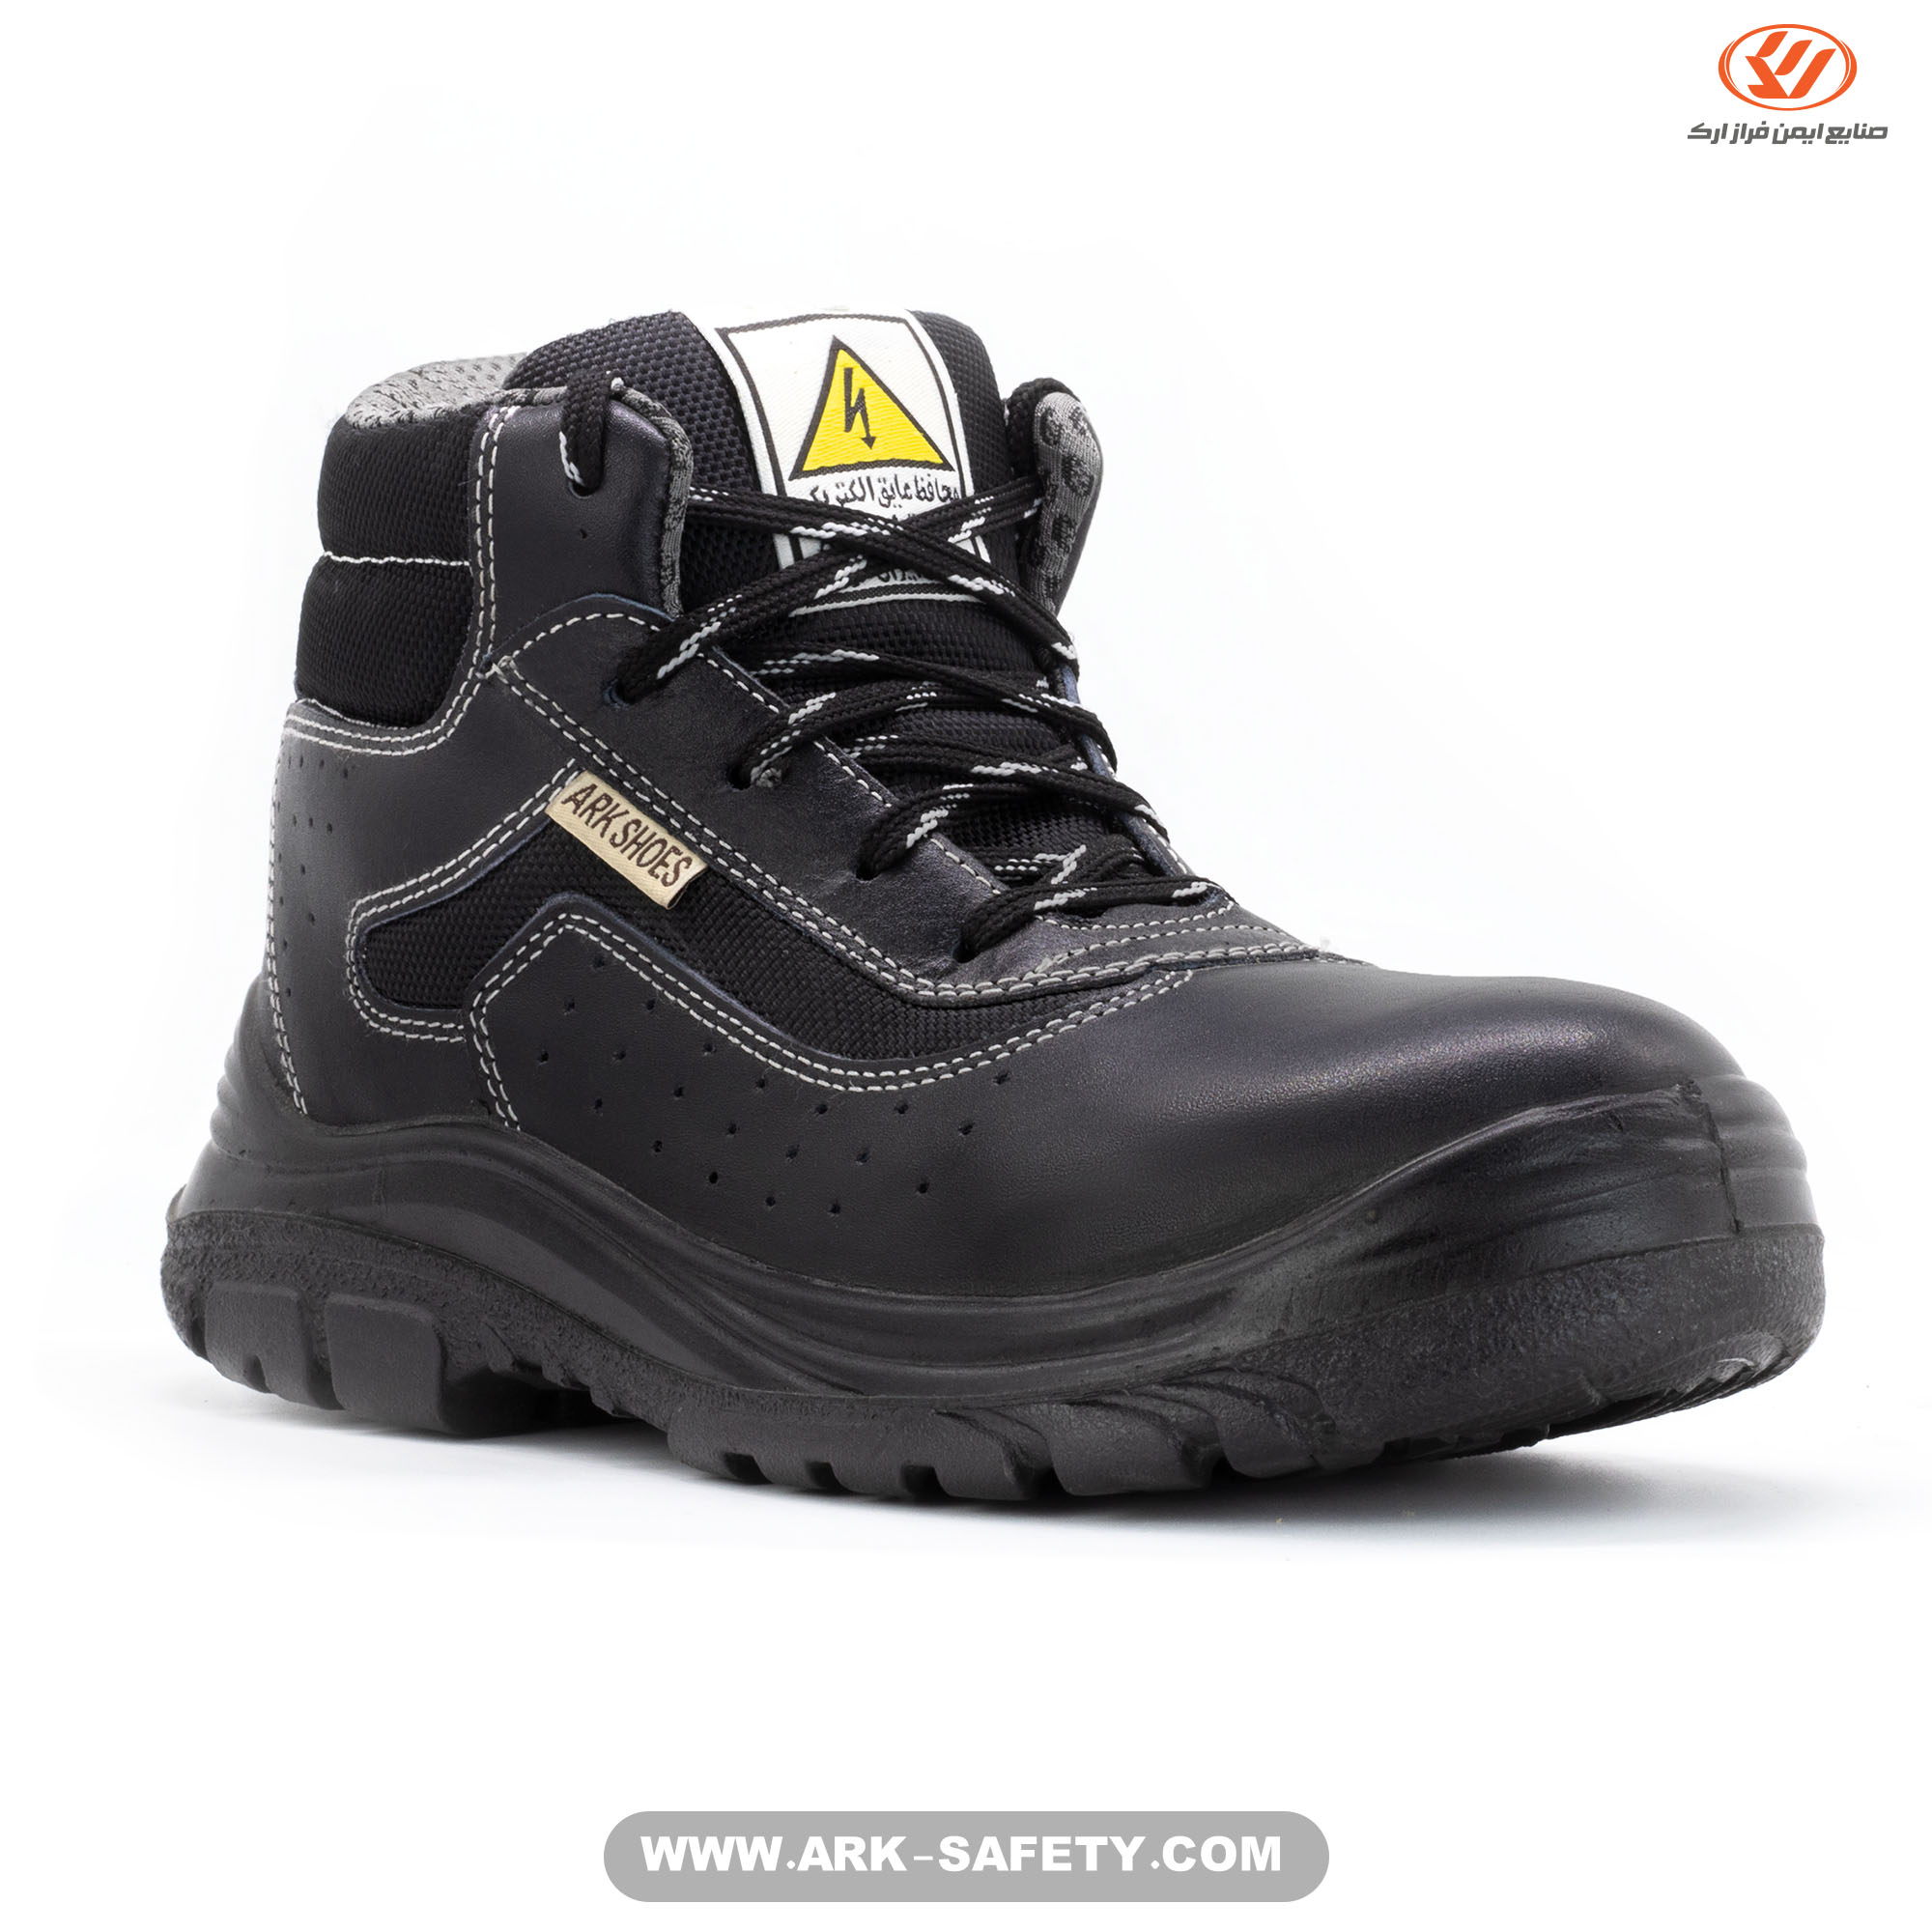 Pro Safety Boots